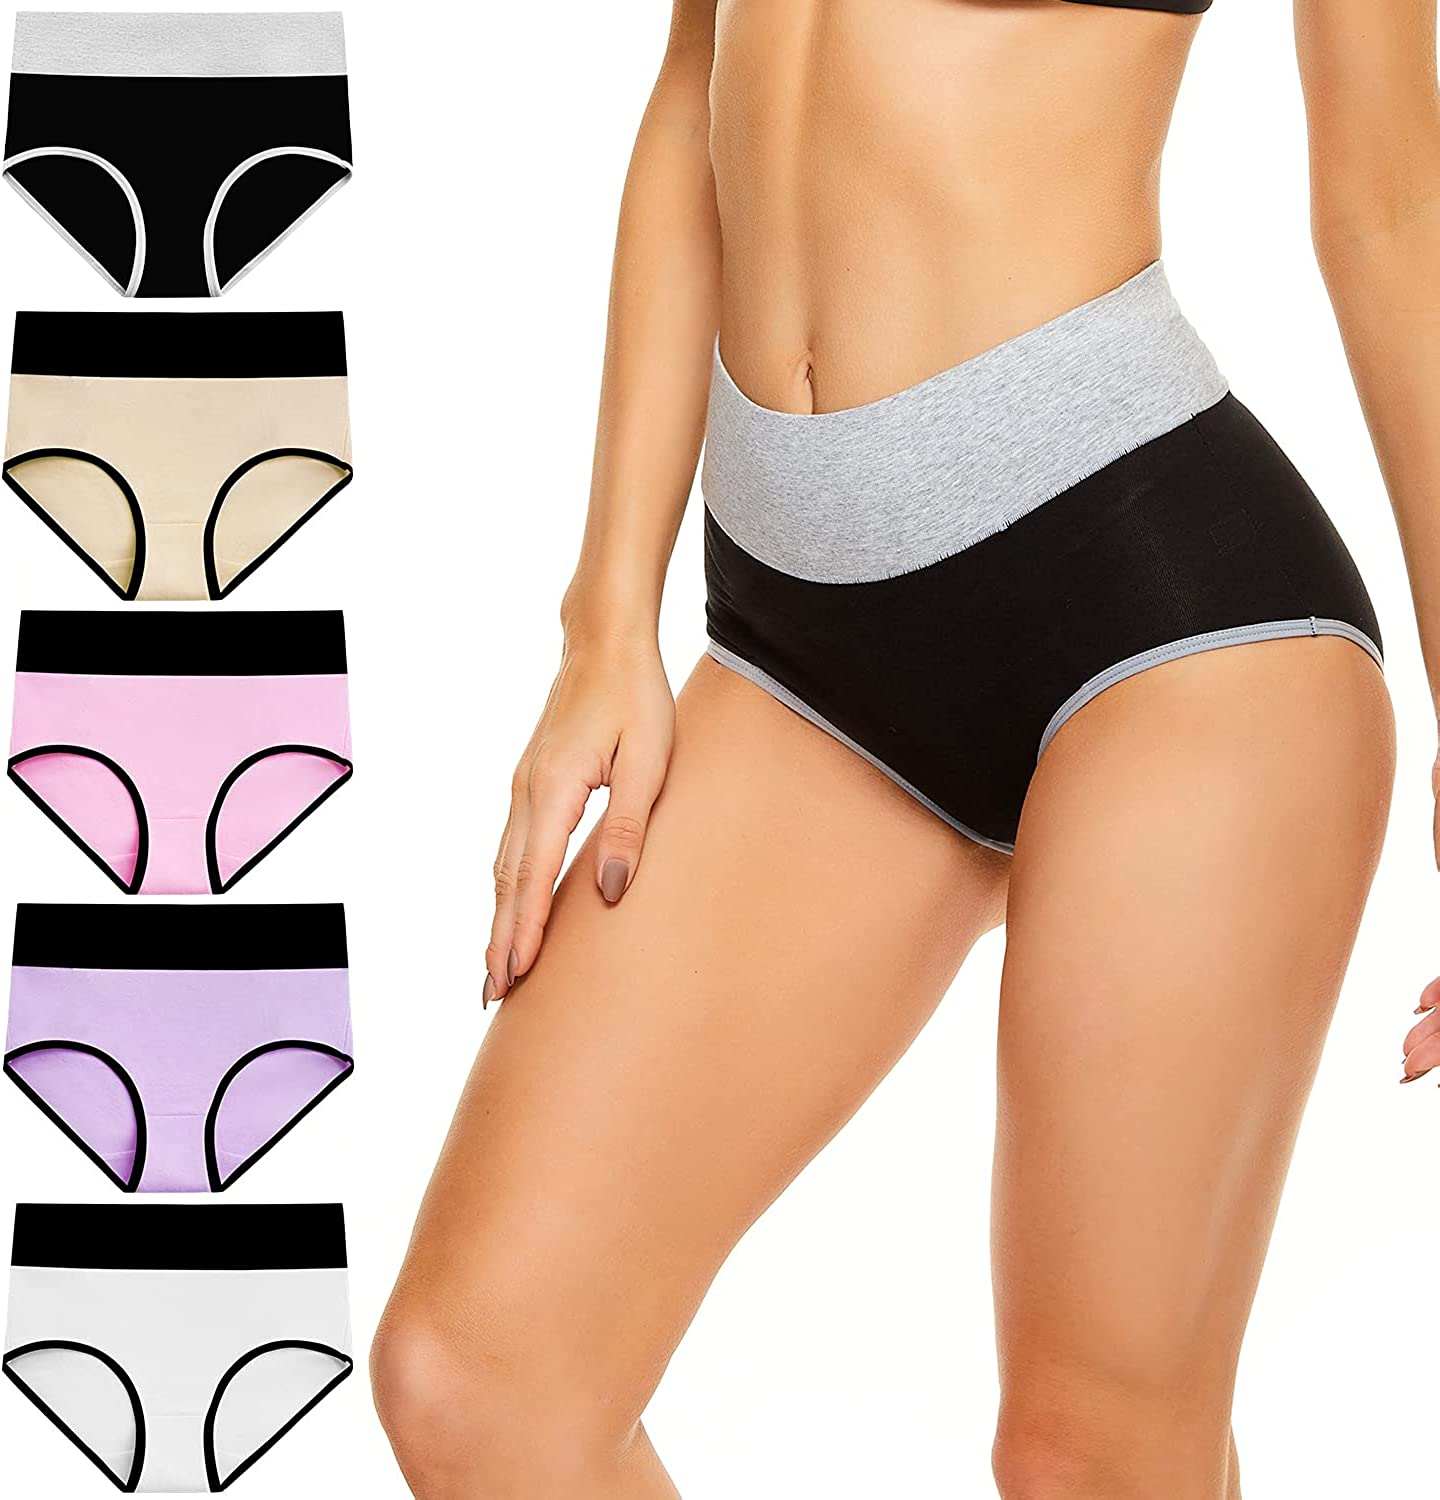 cassney Women's High Waisted Underwear Ladies Stretch Cotton Panties Full Coverage Briefs 5 Pack